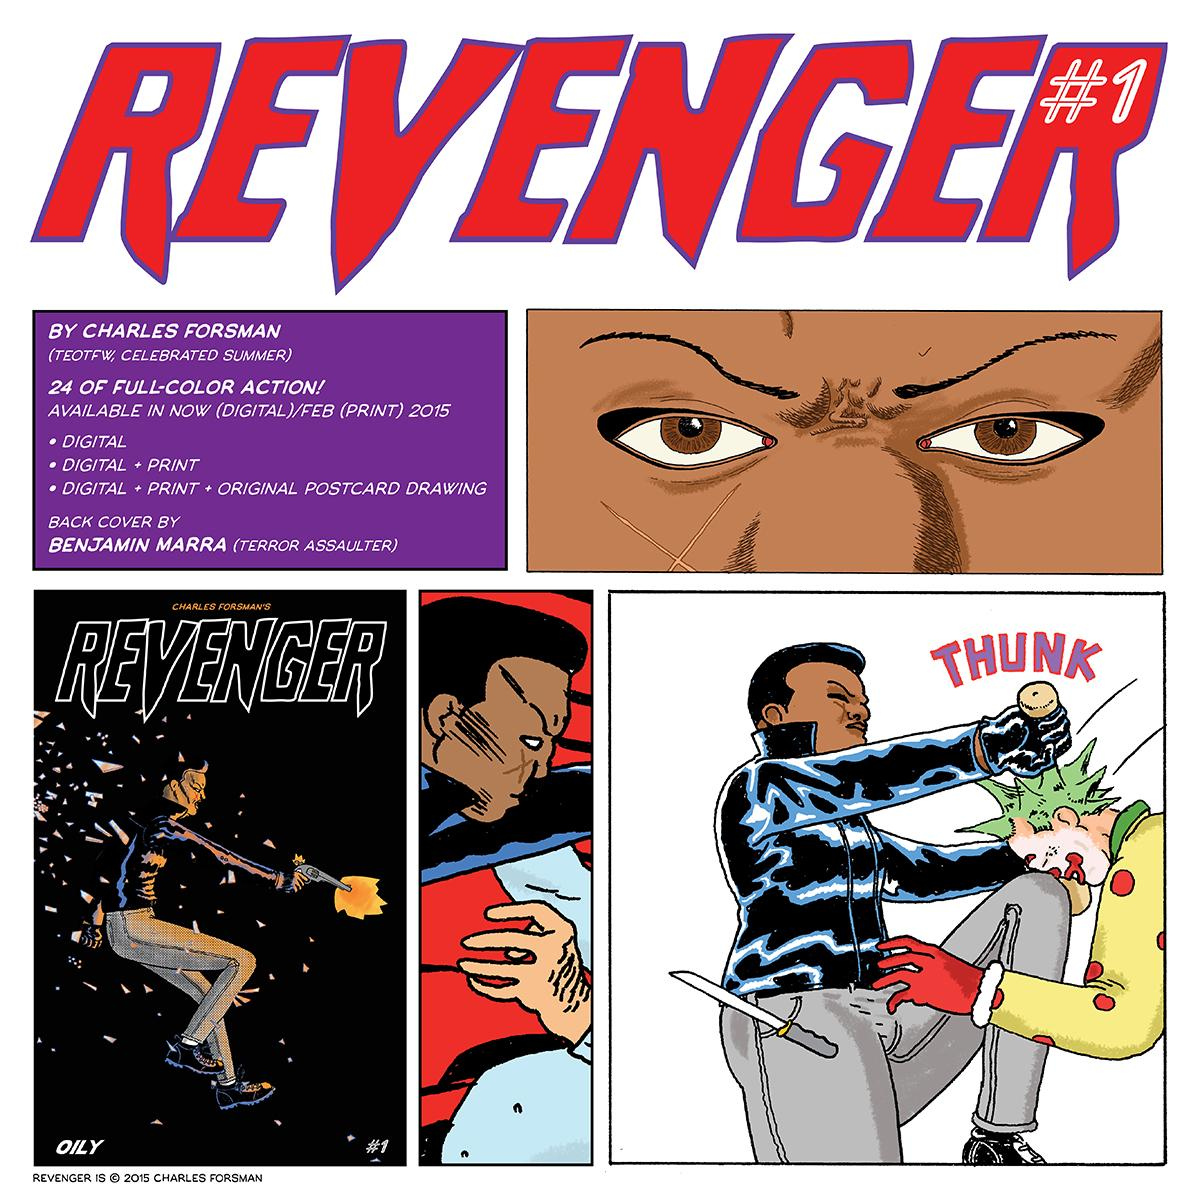 Revenger #1 is now for sale. Digital now and Print coming next month. RT til your butt hurts https://t.co/4duHcdratz http://t.co/XDz4LICYUG